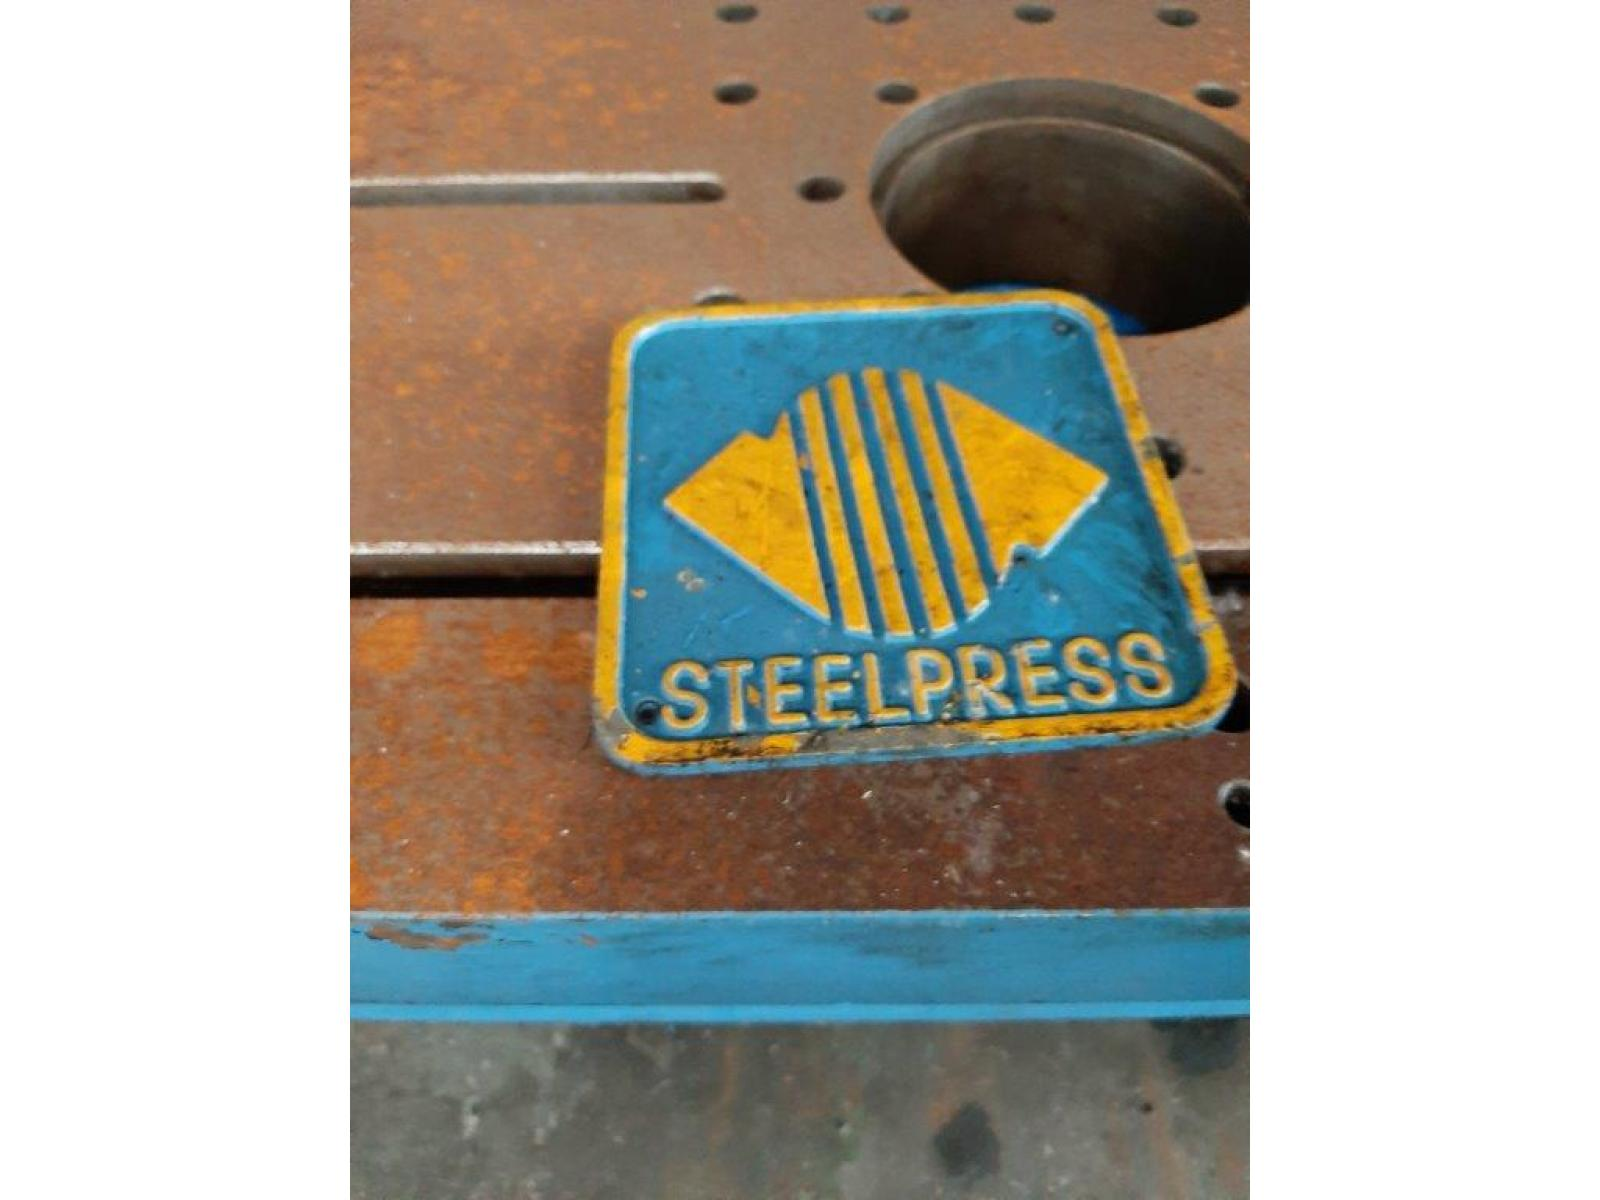 Pressa STEEL PRESS 160 TON